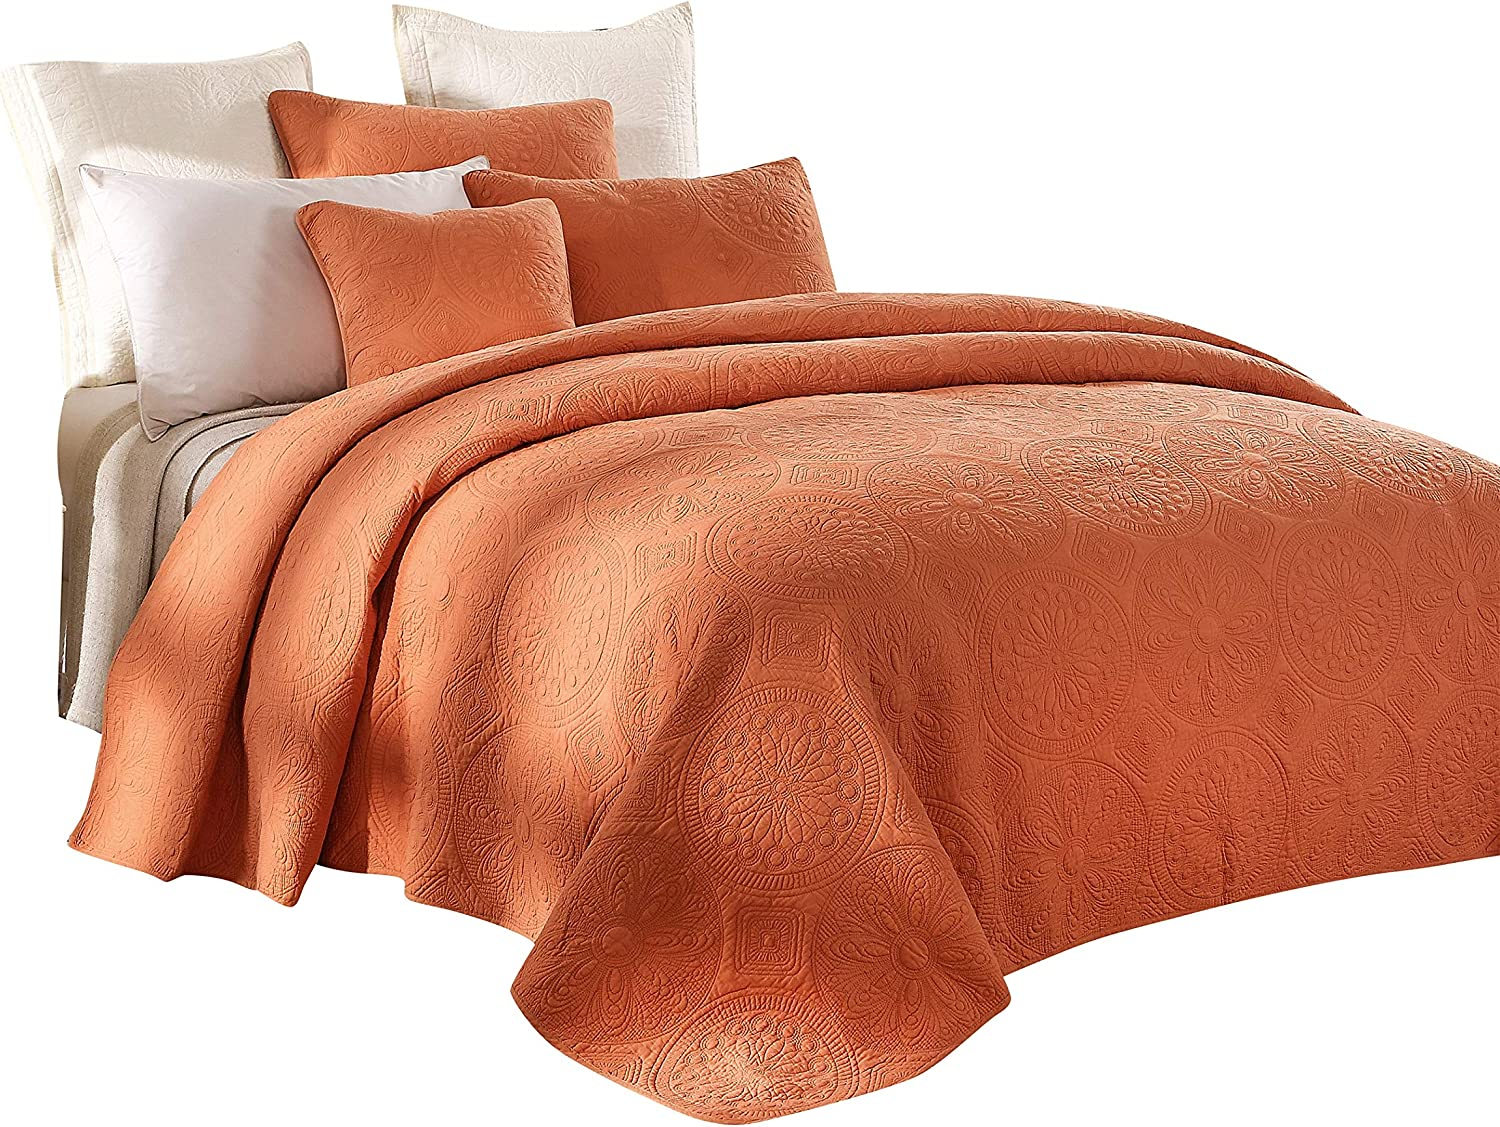 Tache Cotton Pastel Orange Rustic Stone Washed Reversible Matelassé Lightweight Tuscany Sunrise Floral Quilted Bedspread 3 Piece Set, King